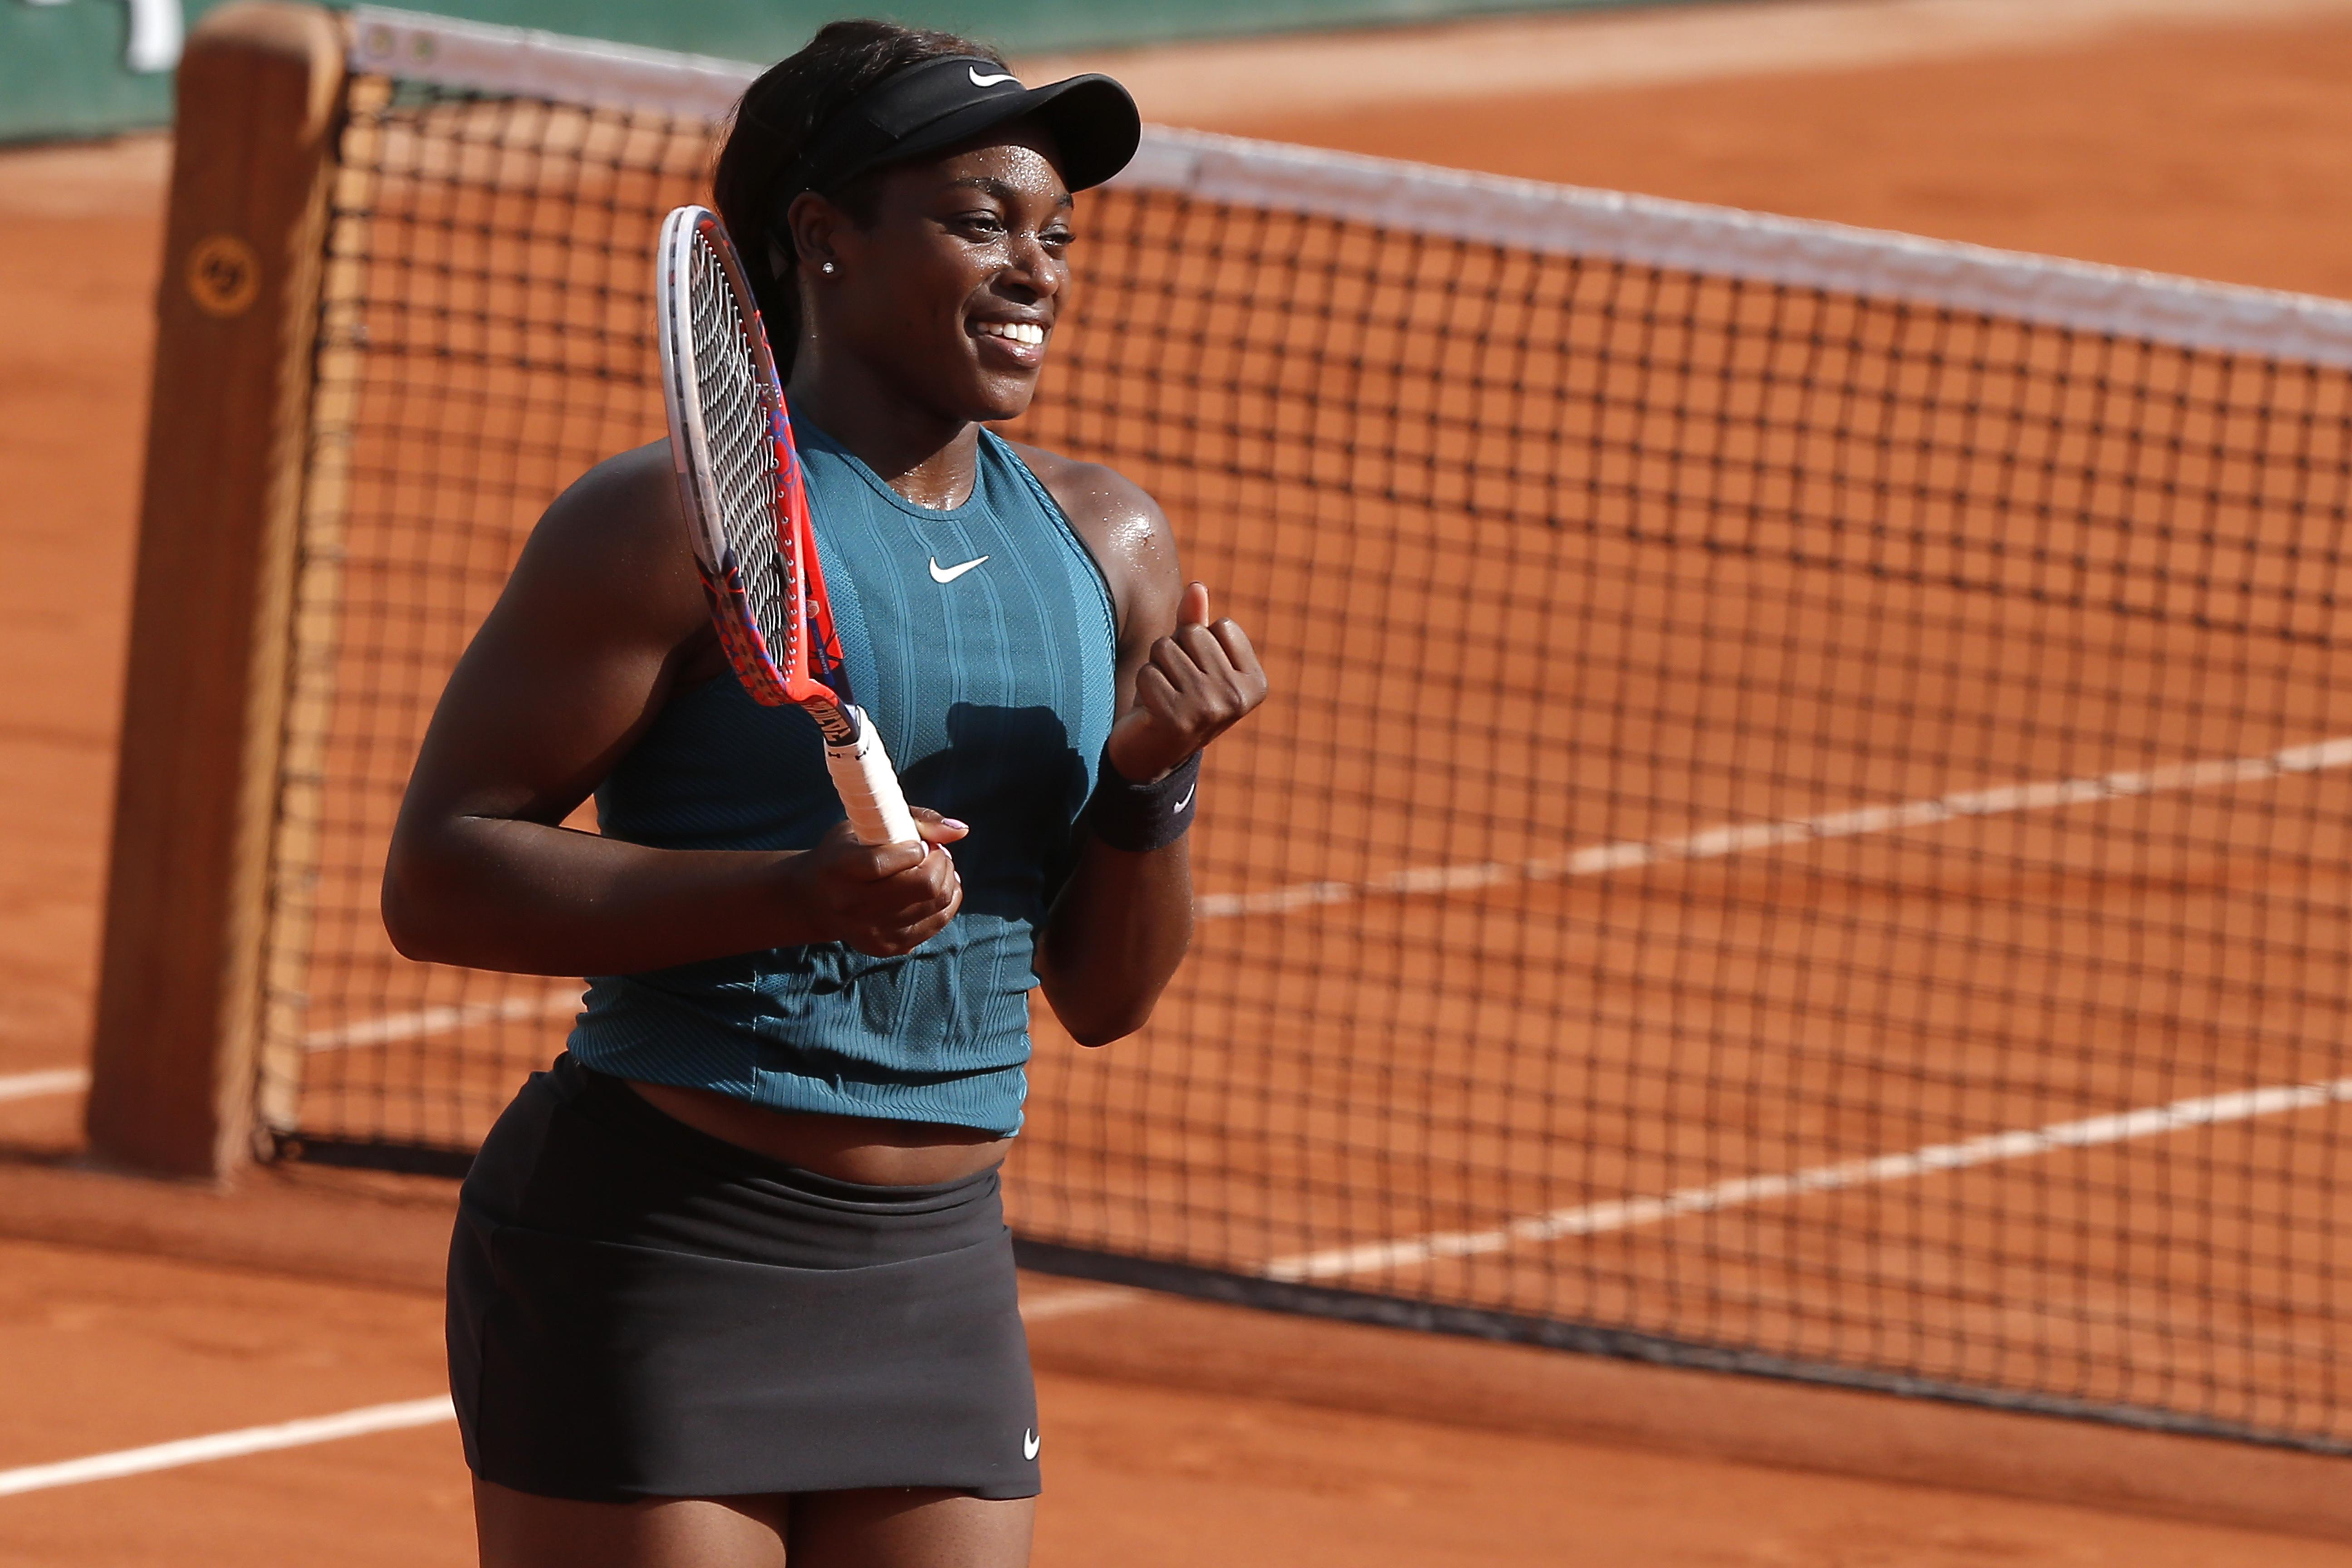 Sloane Stepens reacts after beating Madison Keys to seal her place in the final at Roland Garros